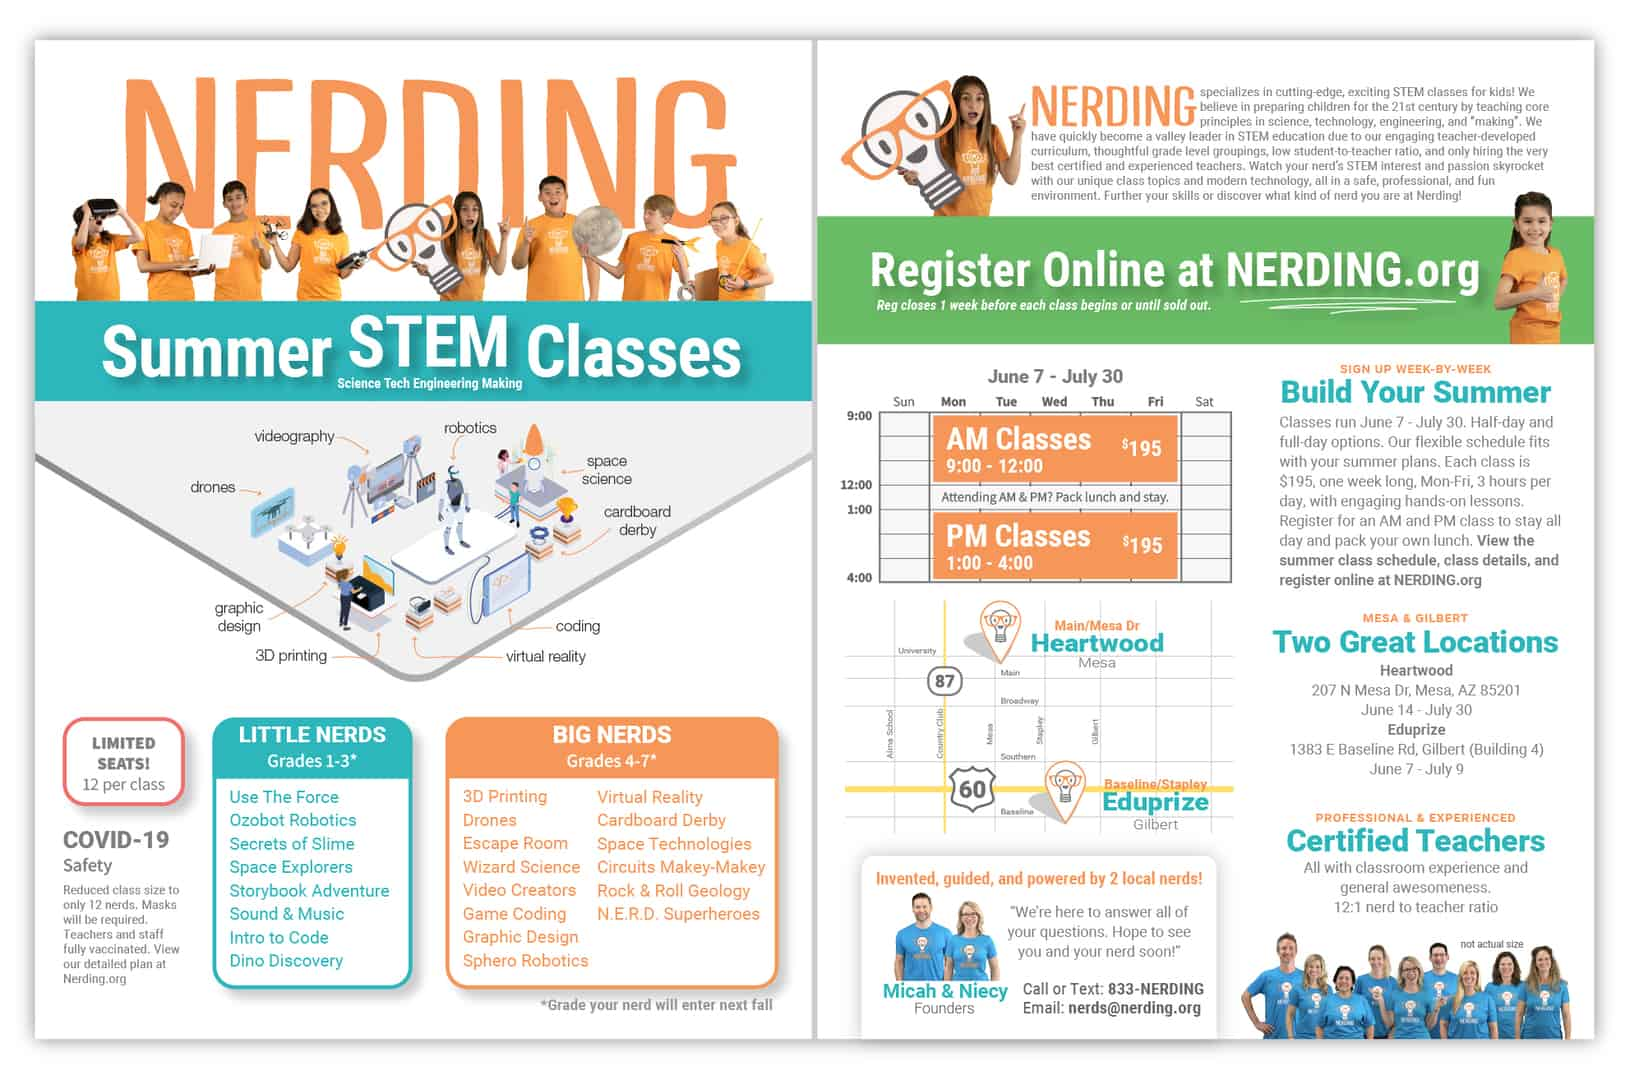 Nerding Summer 2021 In-Person Classes Promotional Flyer Front and Back